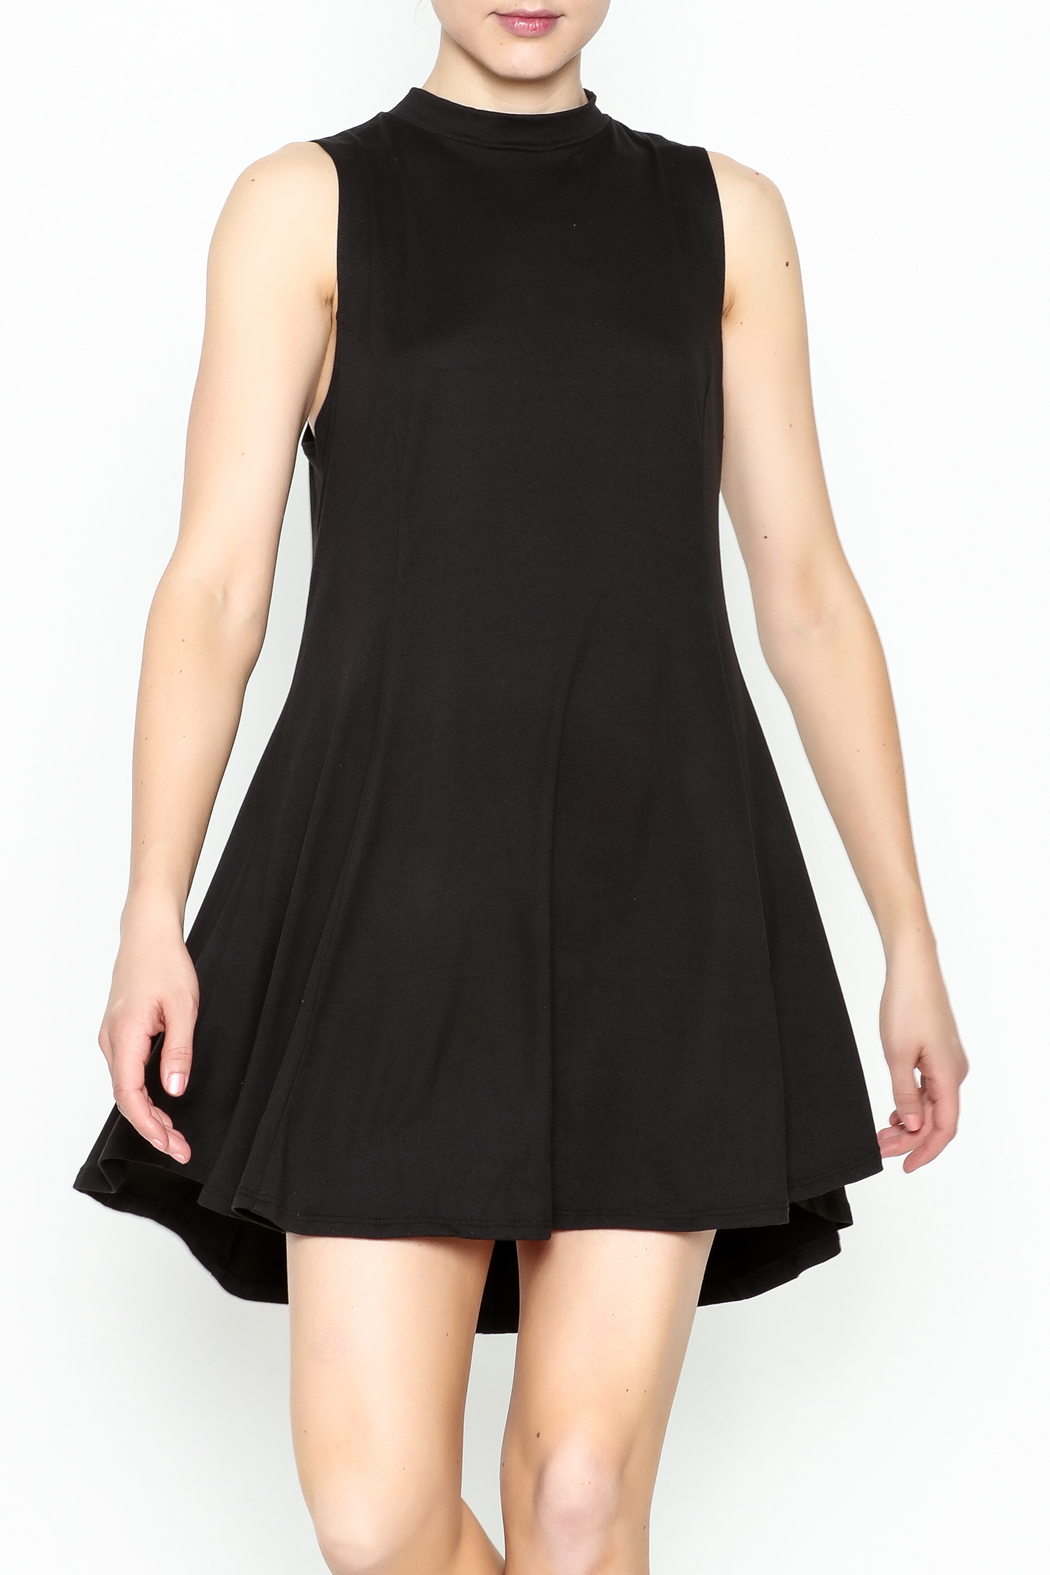 jella c Open Back Skater Dress - Front Cropped Image